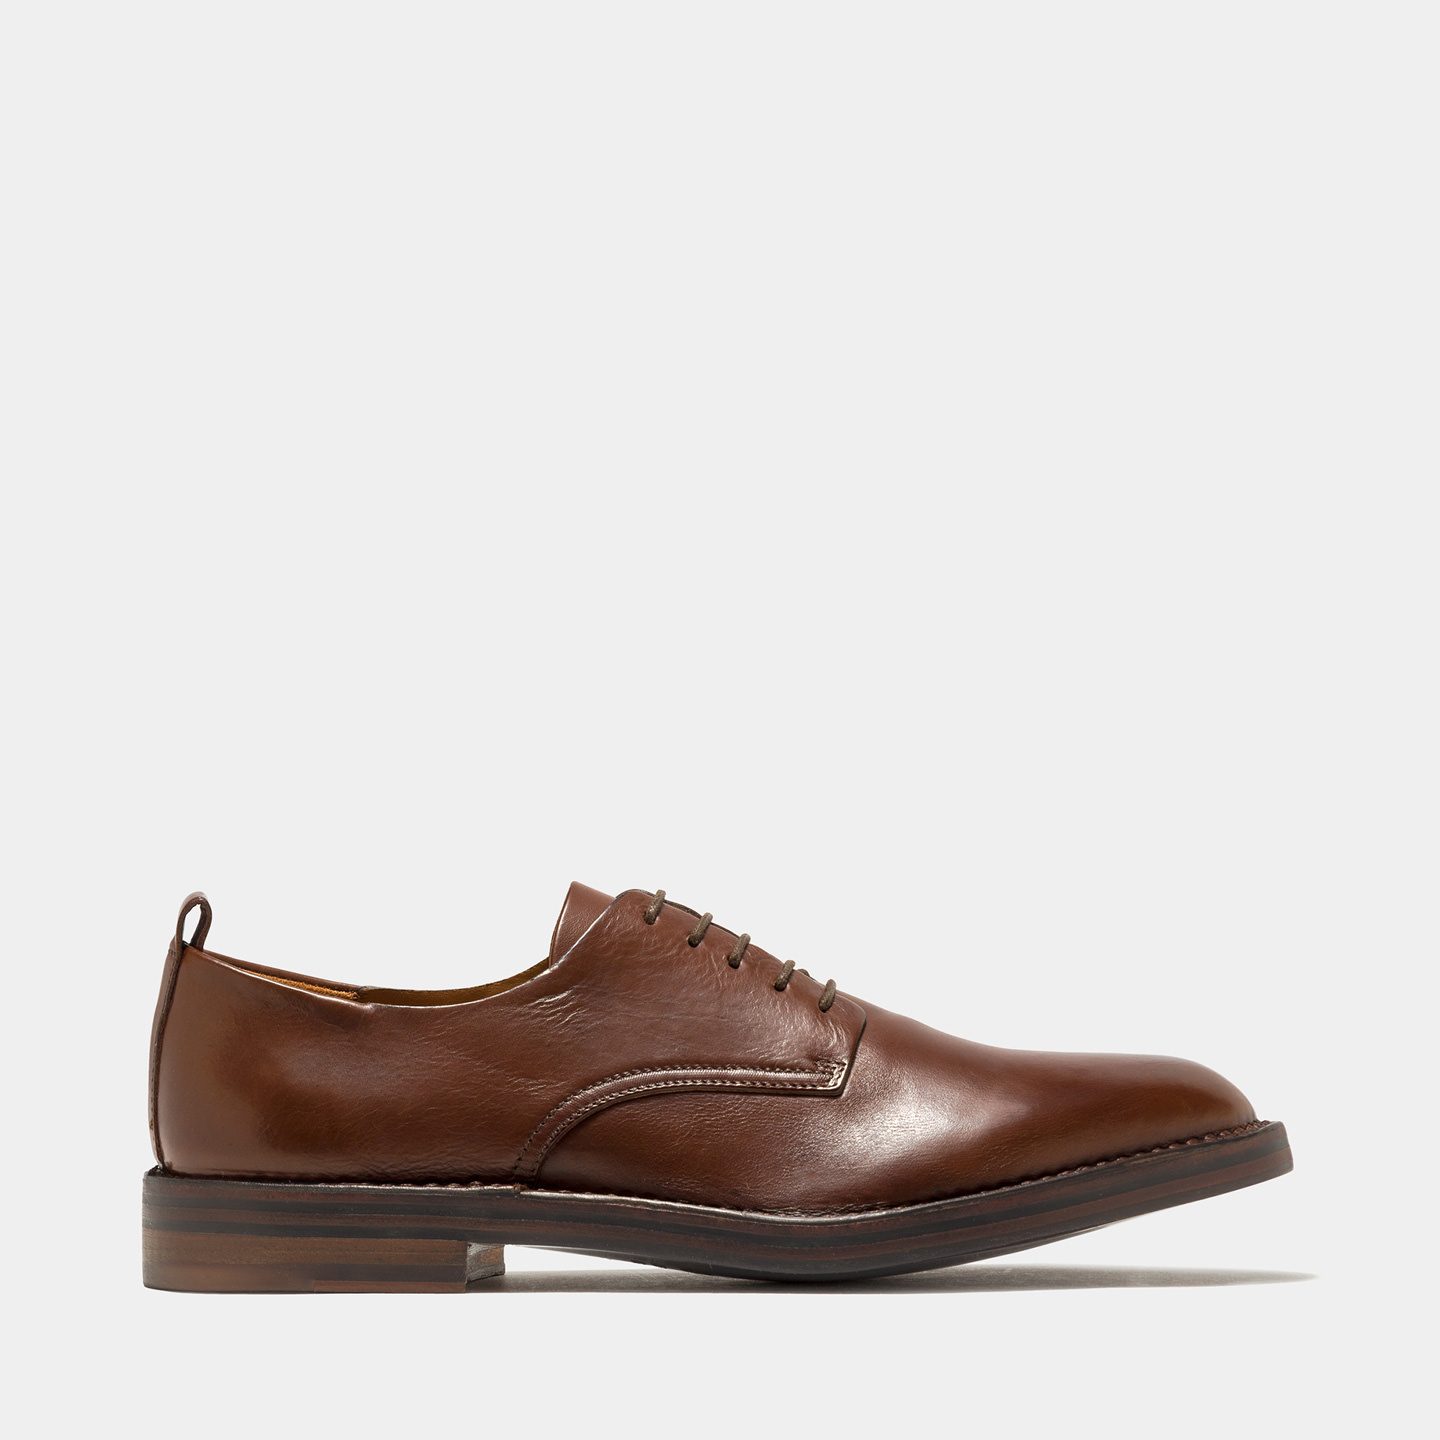 BUTTERO: NATURAL BROWN LEATHER LACE-UP SHOES